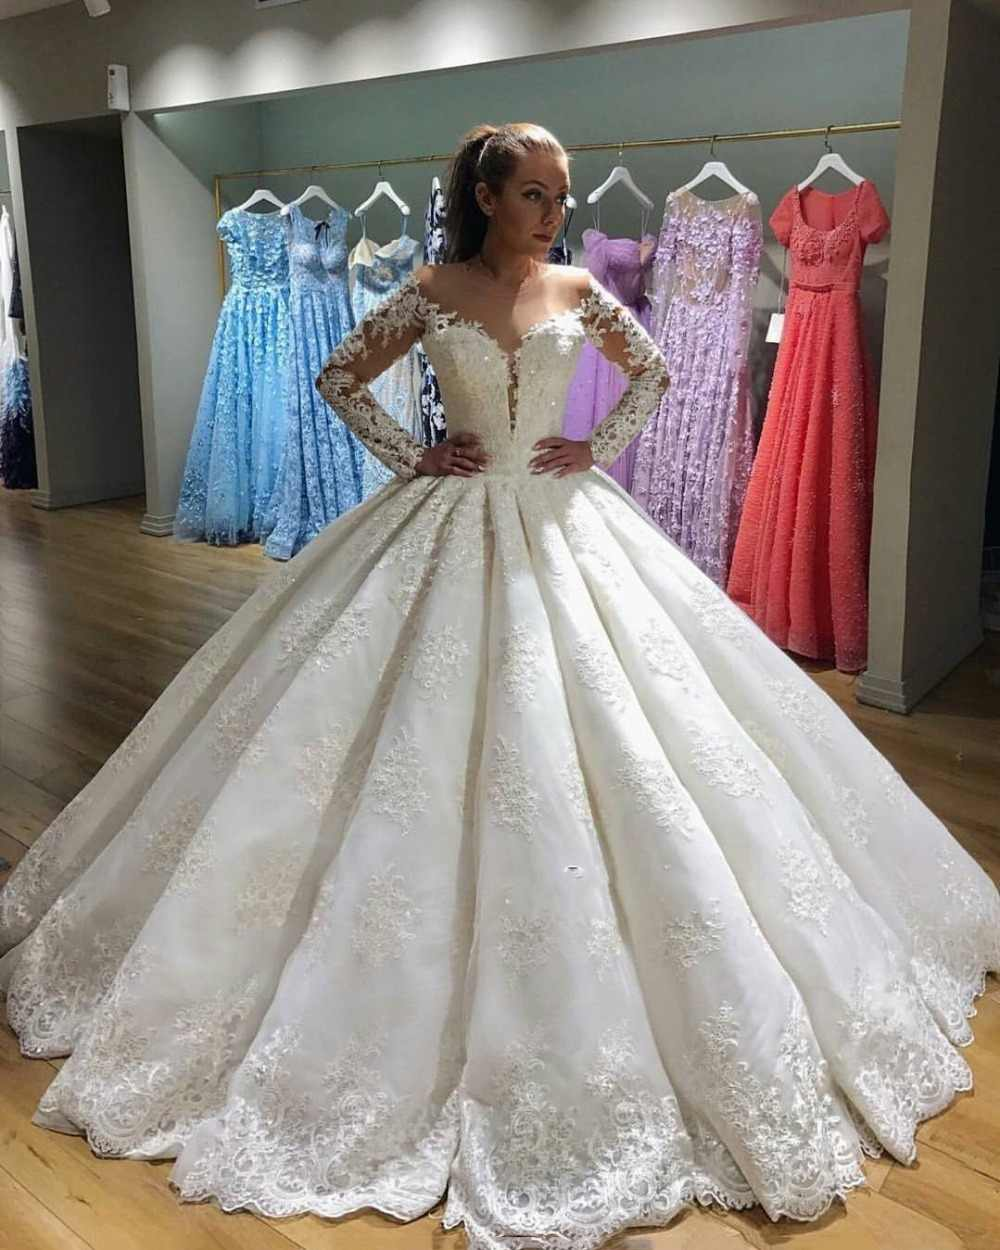 Newest Ball Gown Wedding Dresses 2019 Long Sleeve Vintage Lace Bride Dress Lace Up Back vestidos de noiva